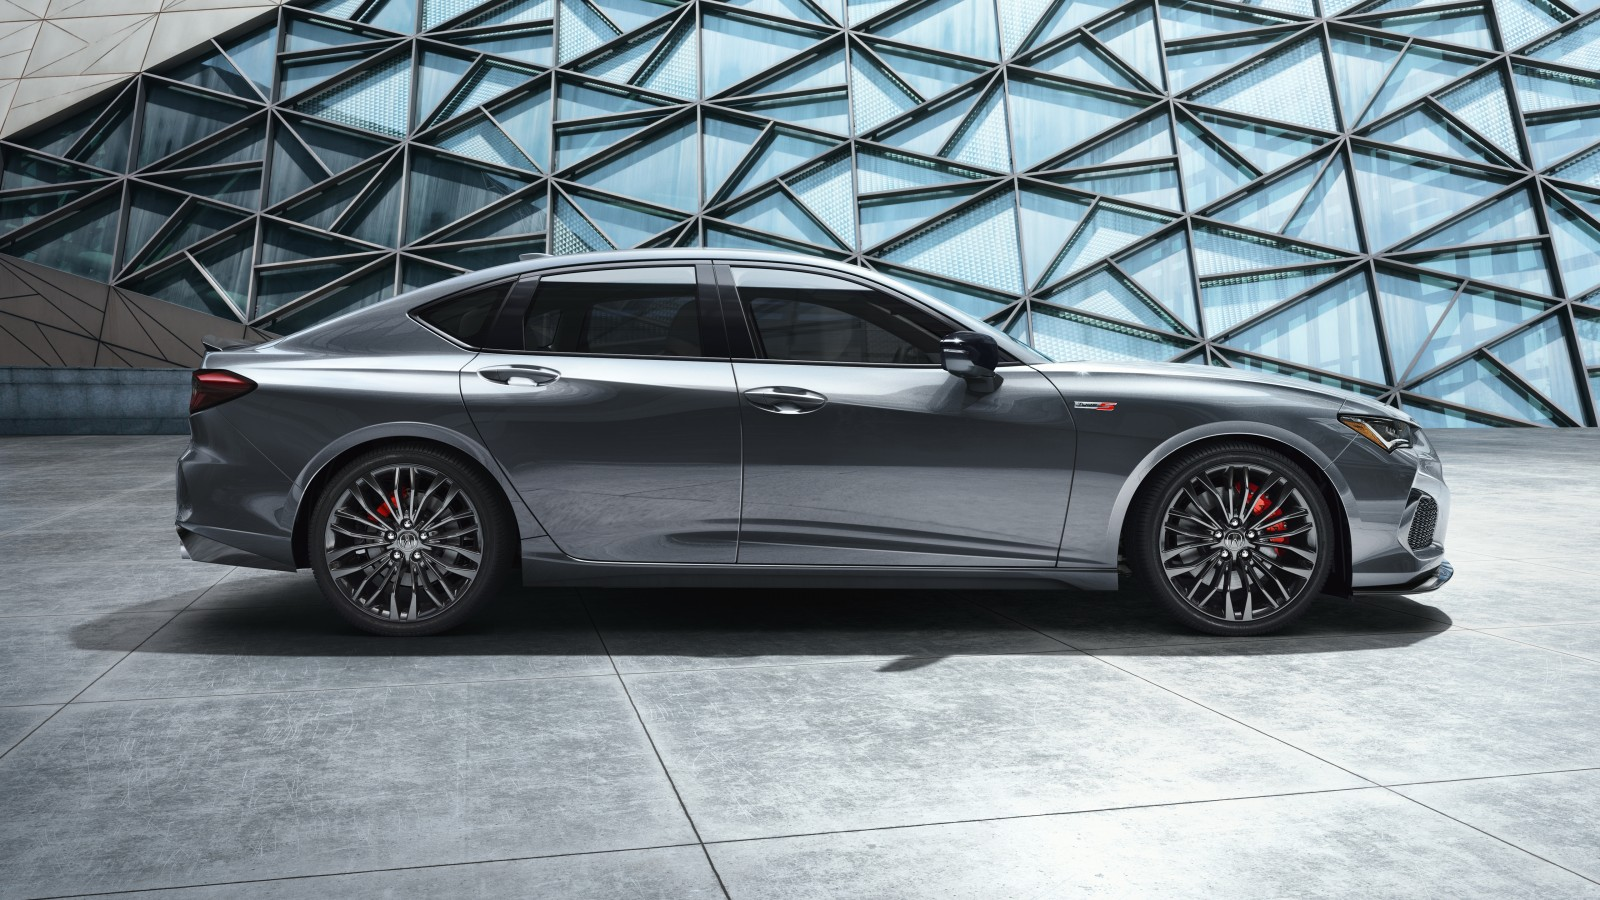 2021 Acura TLX Type S 5K Wallpaper HD Car Wallpapers ID 14896 1600x900